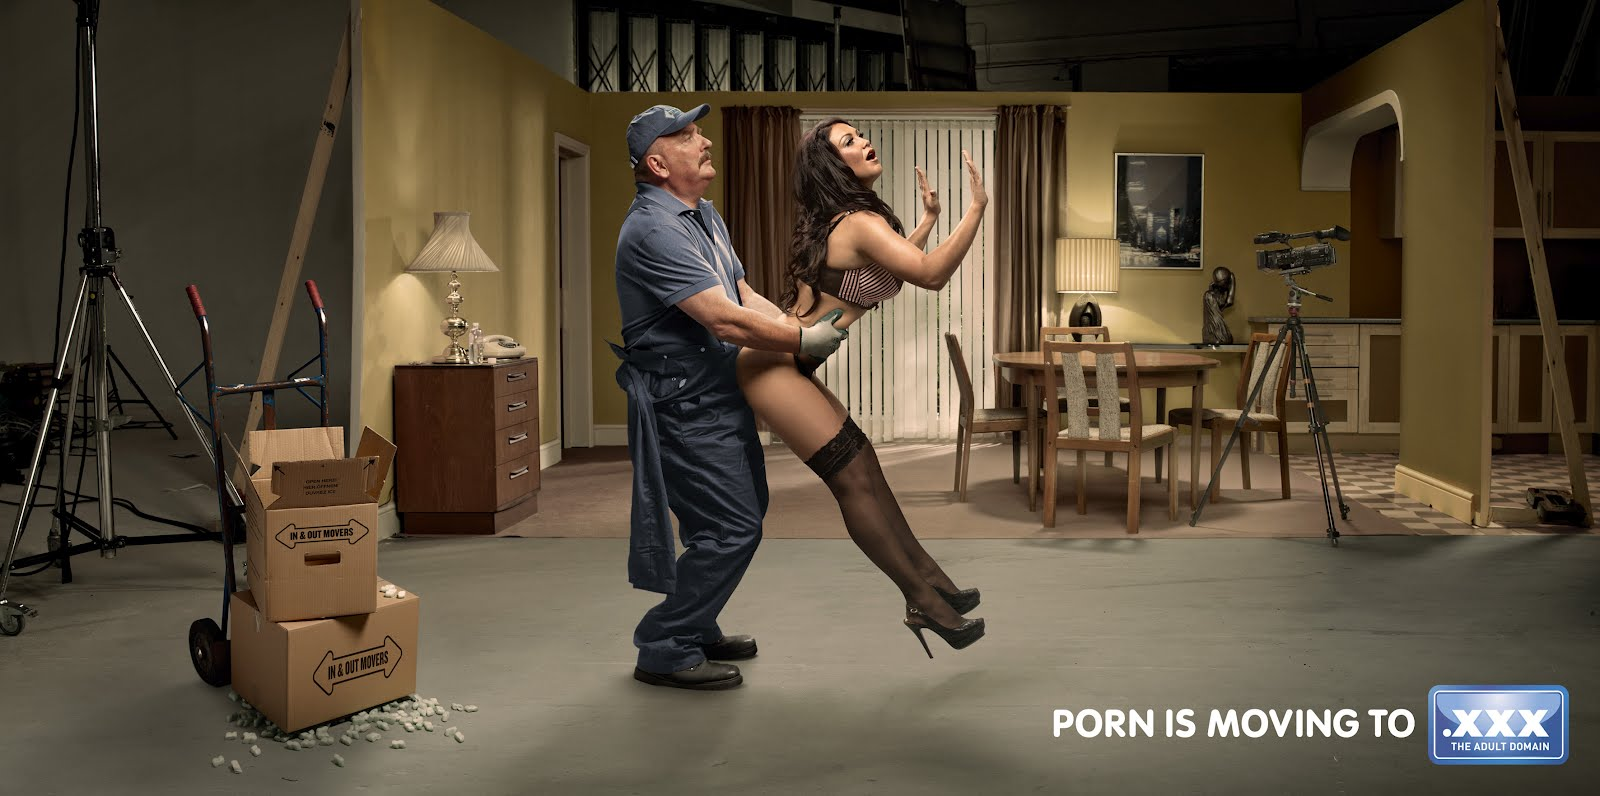 The New .XXX Ad Campaign: What Happens When Porn Grows Up?